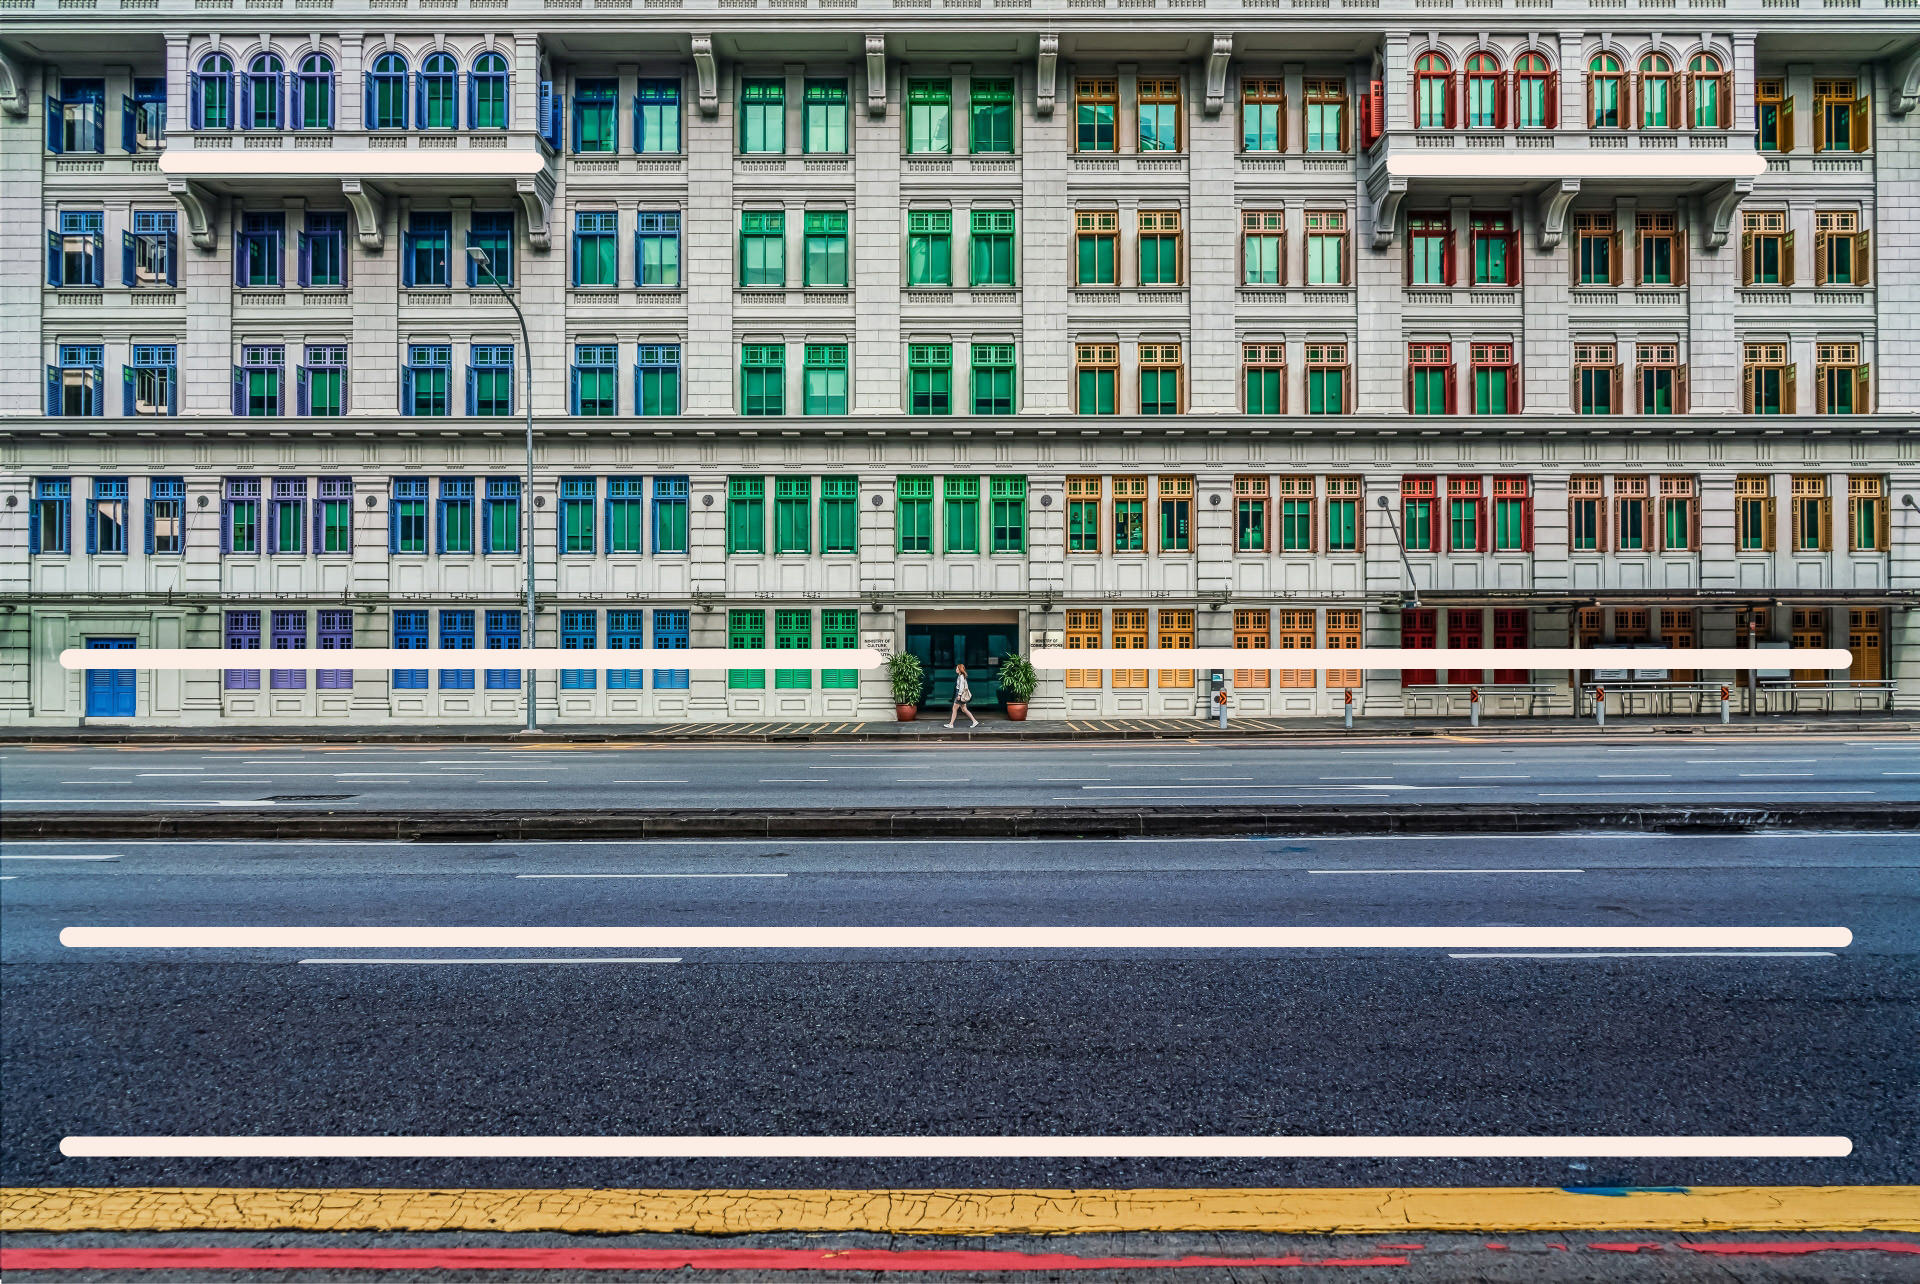 The colourful windows of a building in Singapore with added leading lines to show the compositional technique